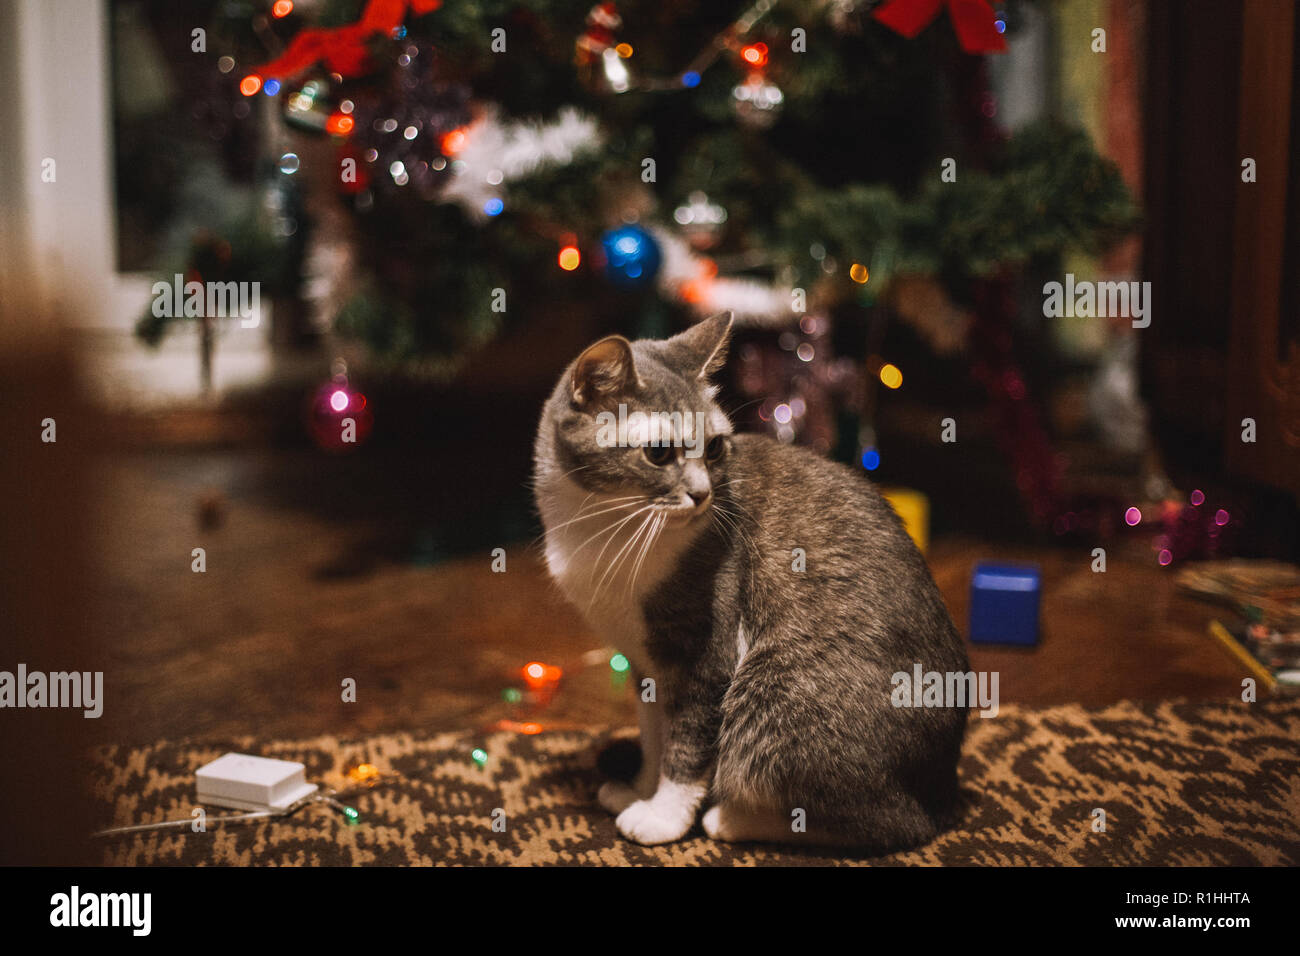 Cat sitting on the floor beside Christmas tree at home - Stock Image